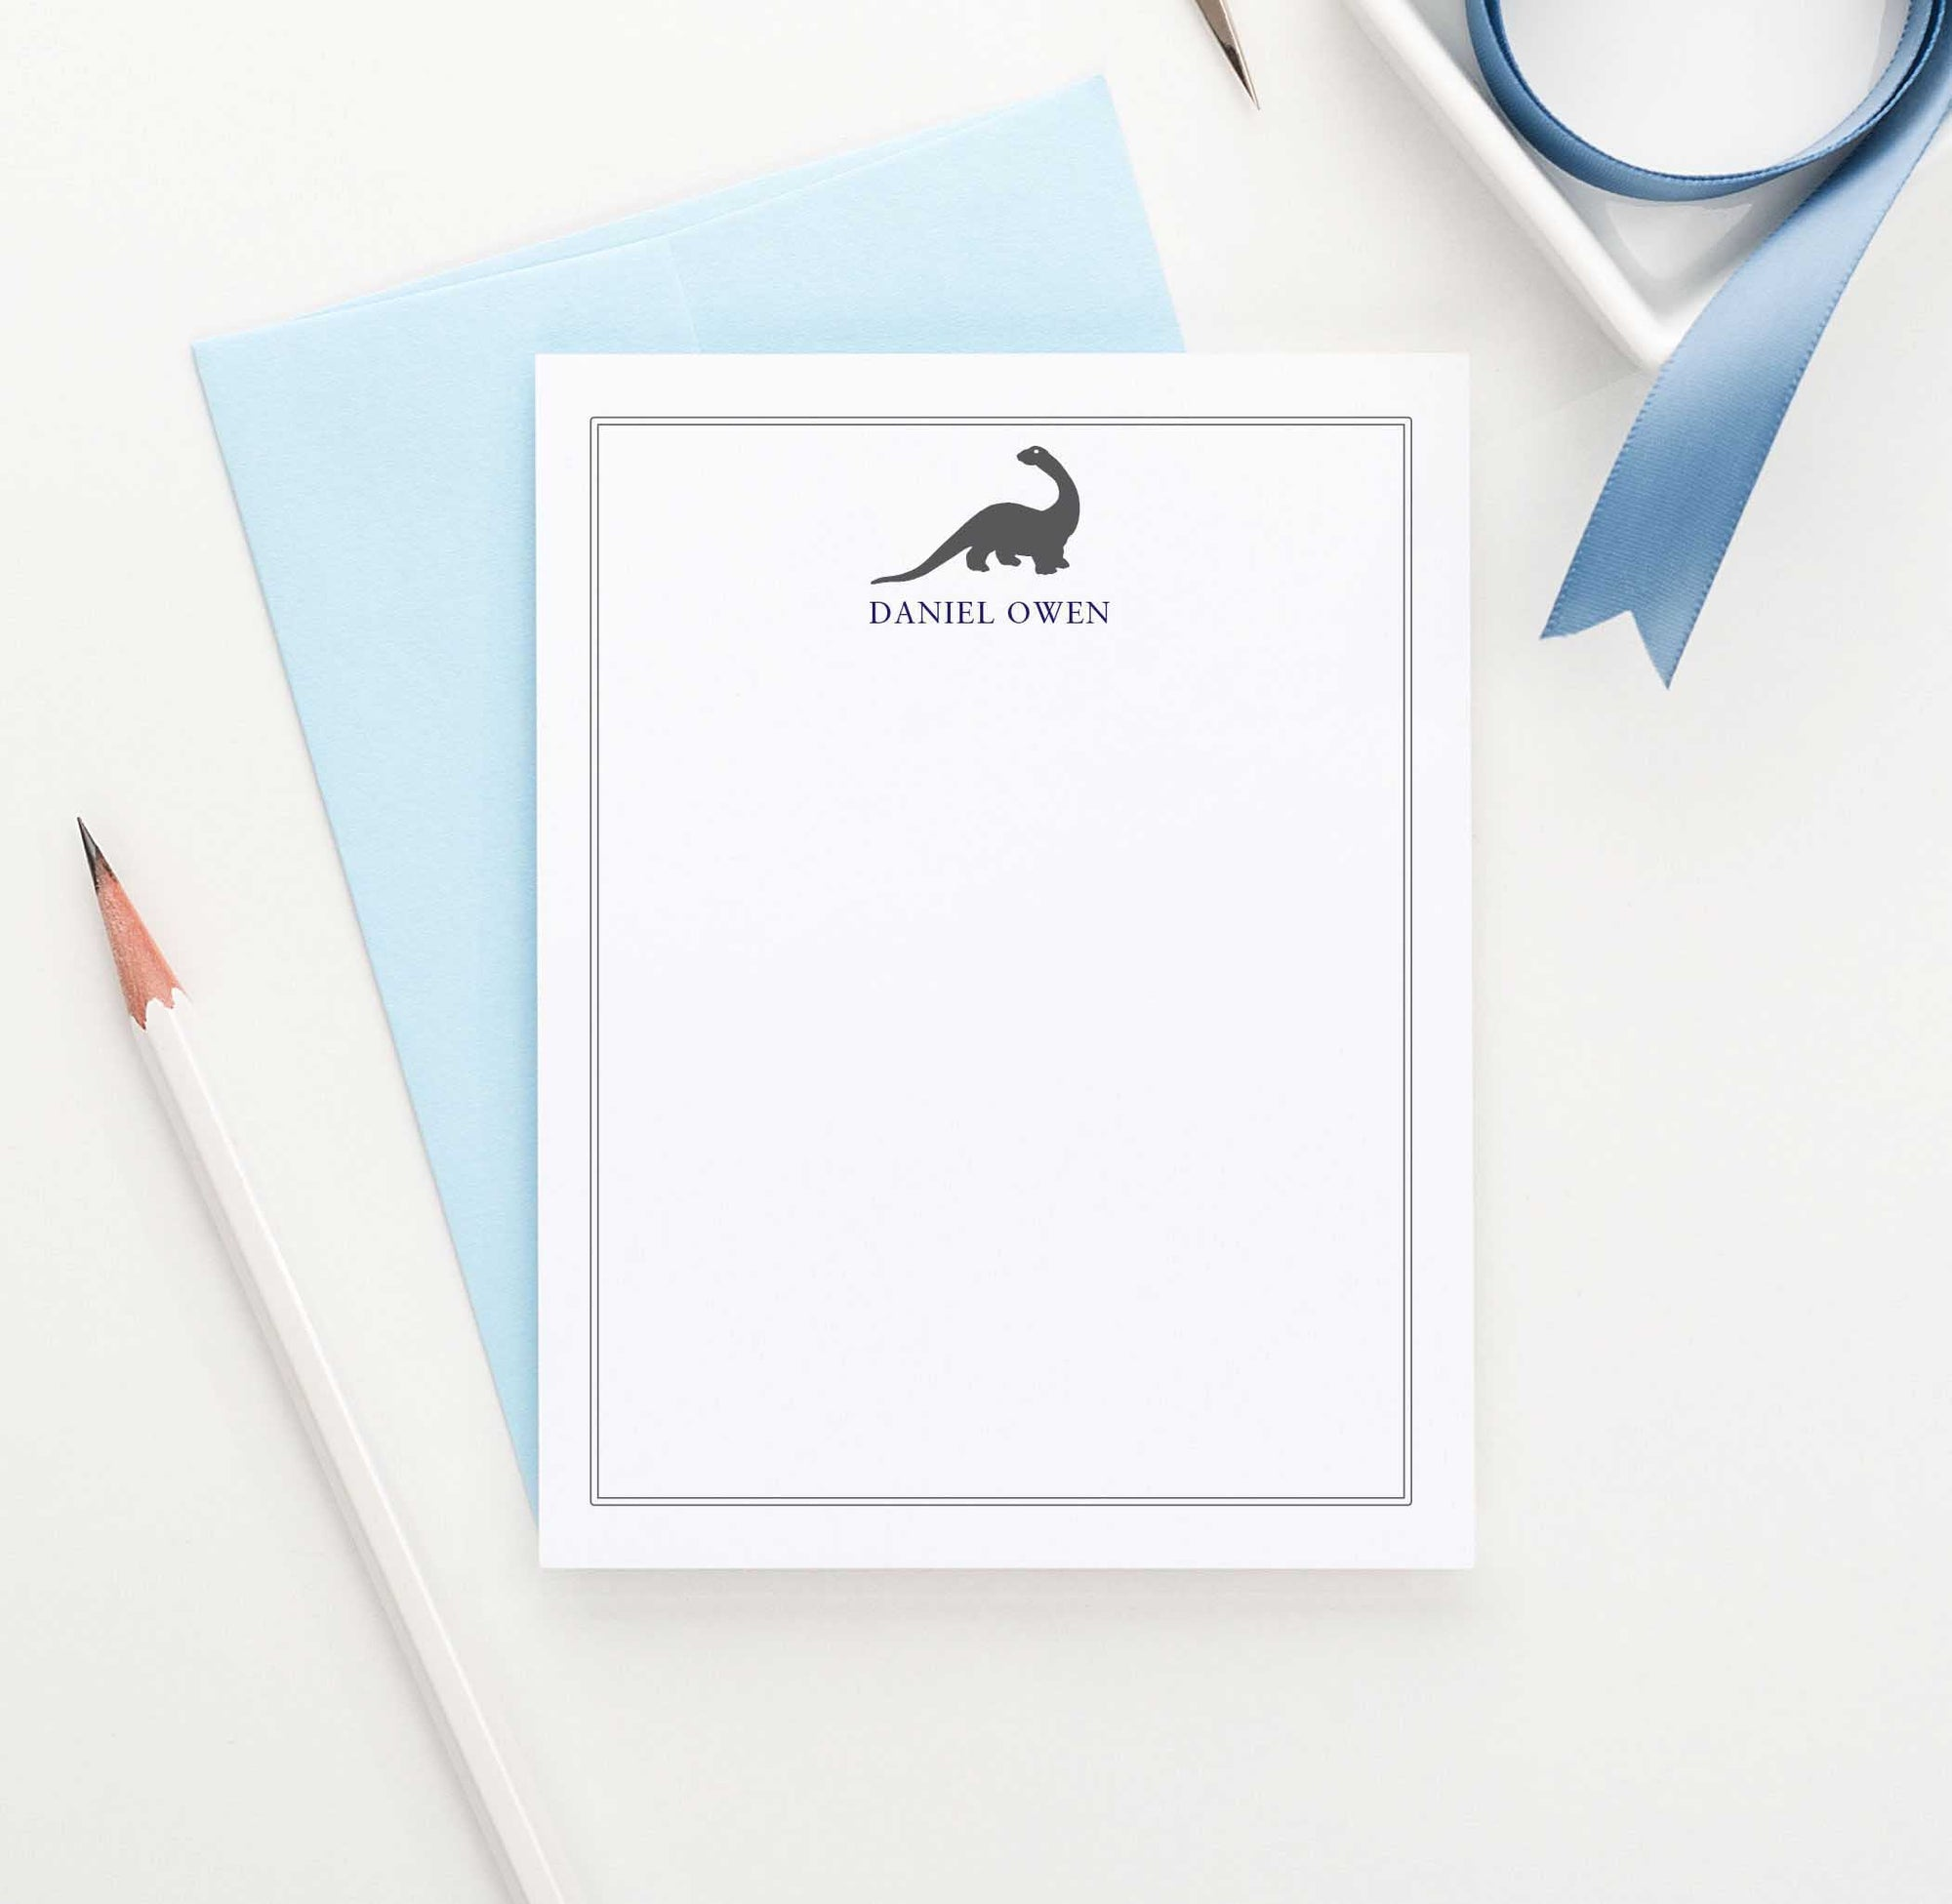 KS010 brontosaurus dinosaur stationery set personalized animal dino dinosaurs 1